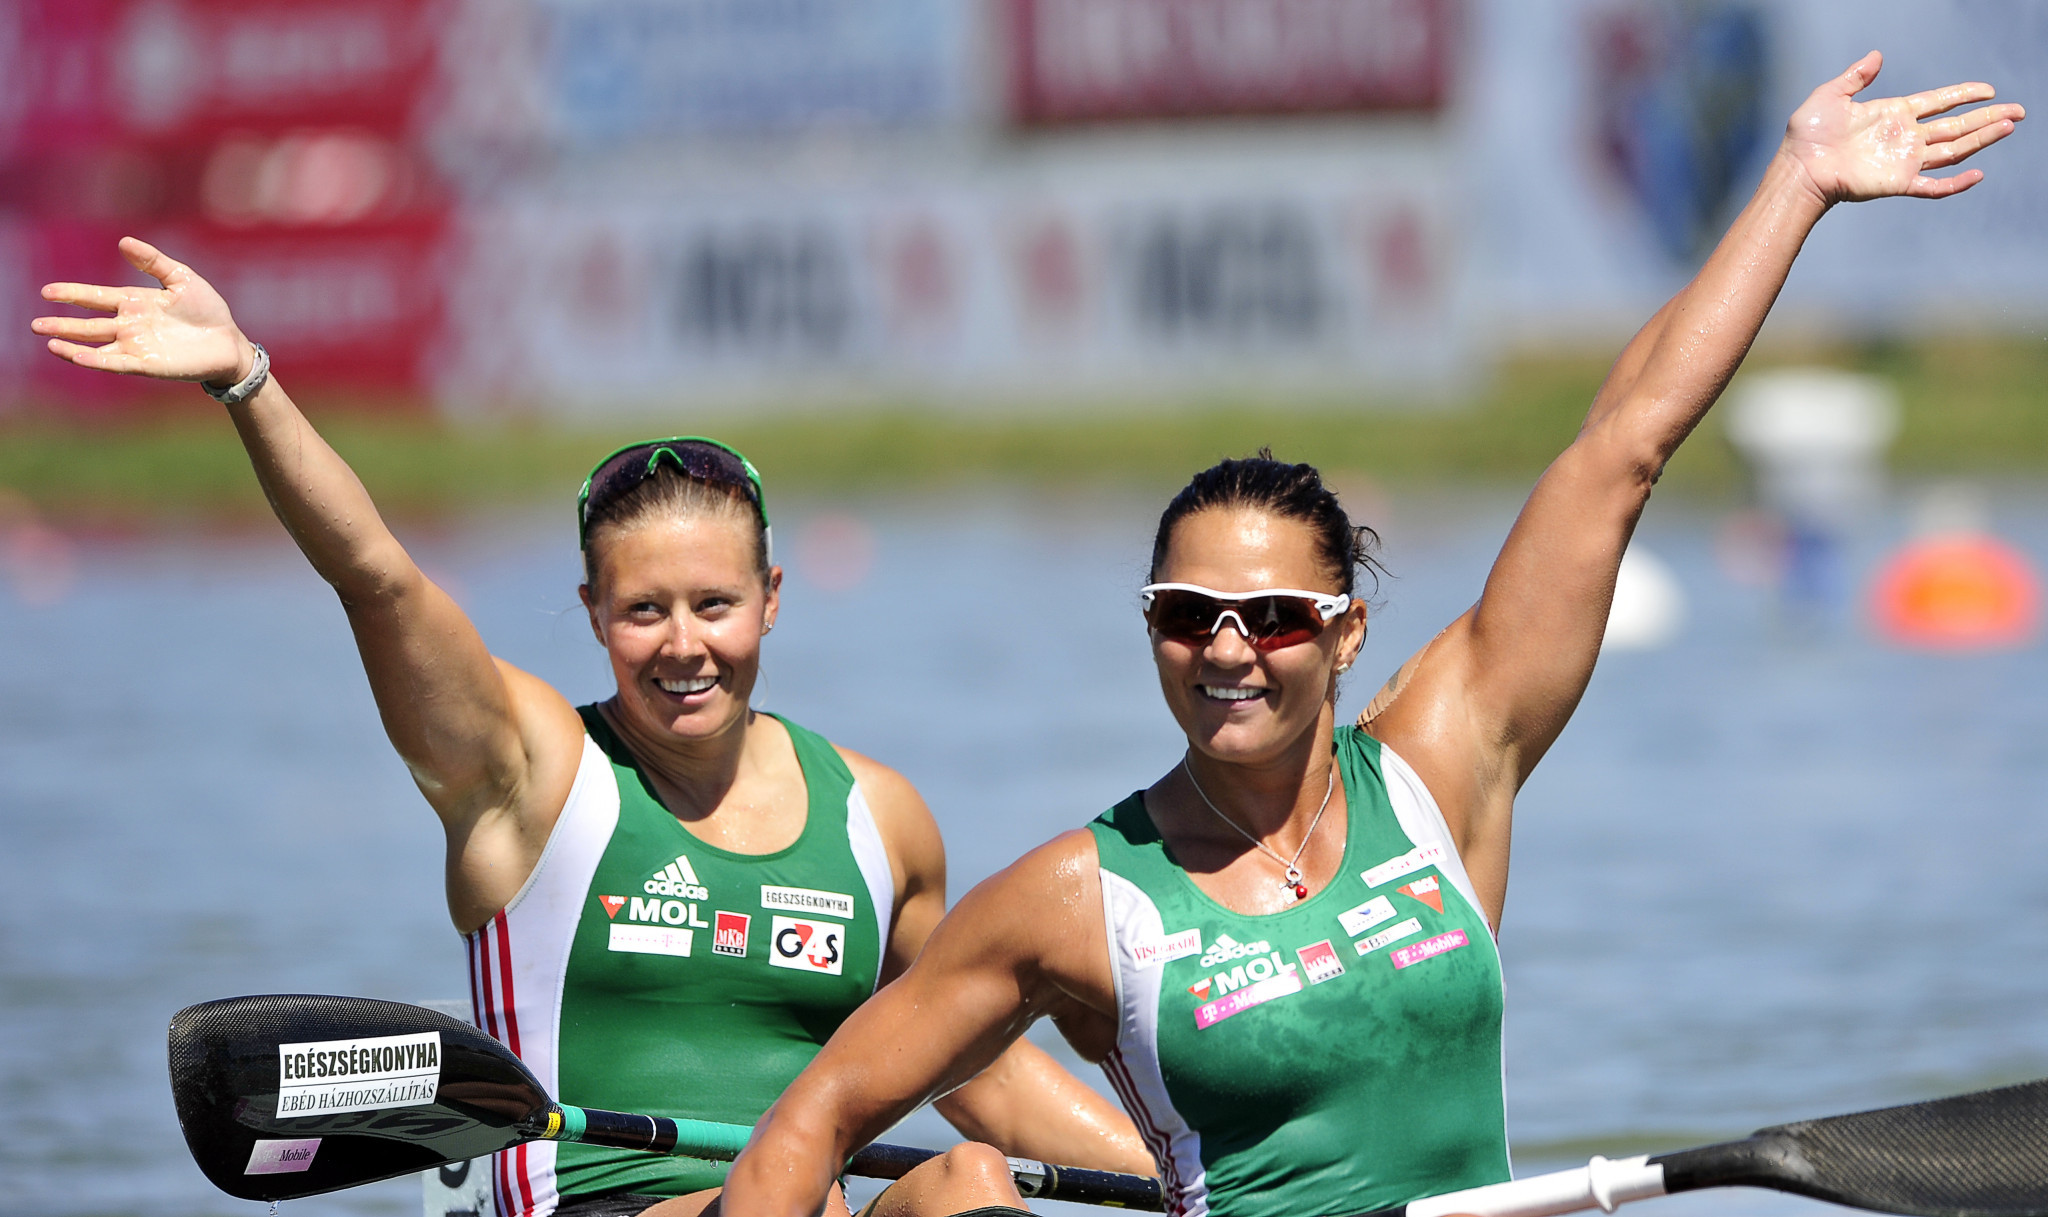 Szeged is set to host the Canoe Sprint European Championships in 2024 ©Getty Images